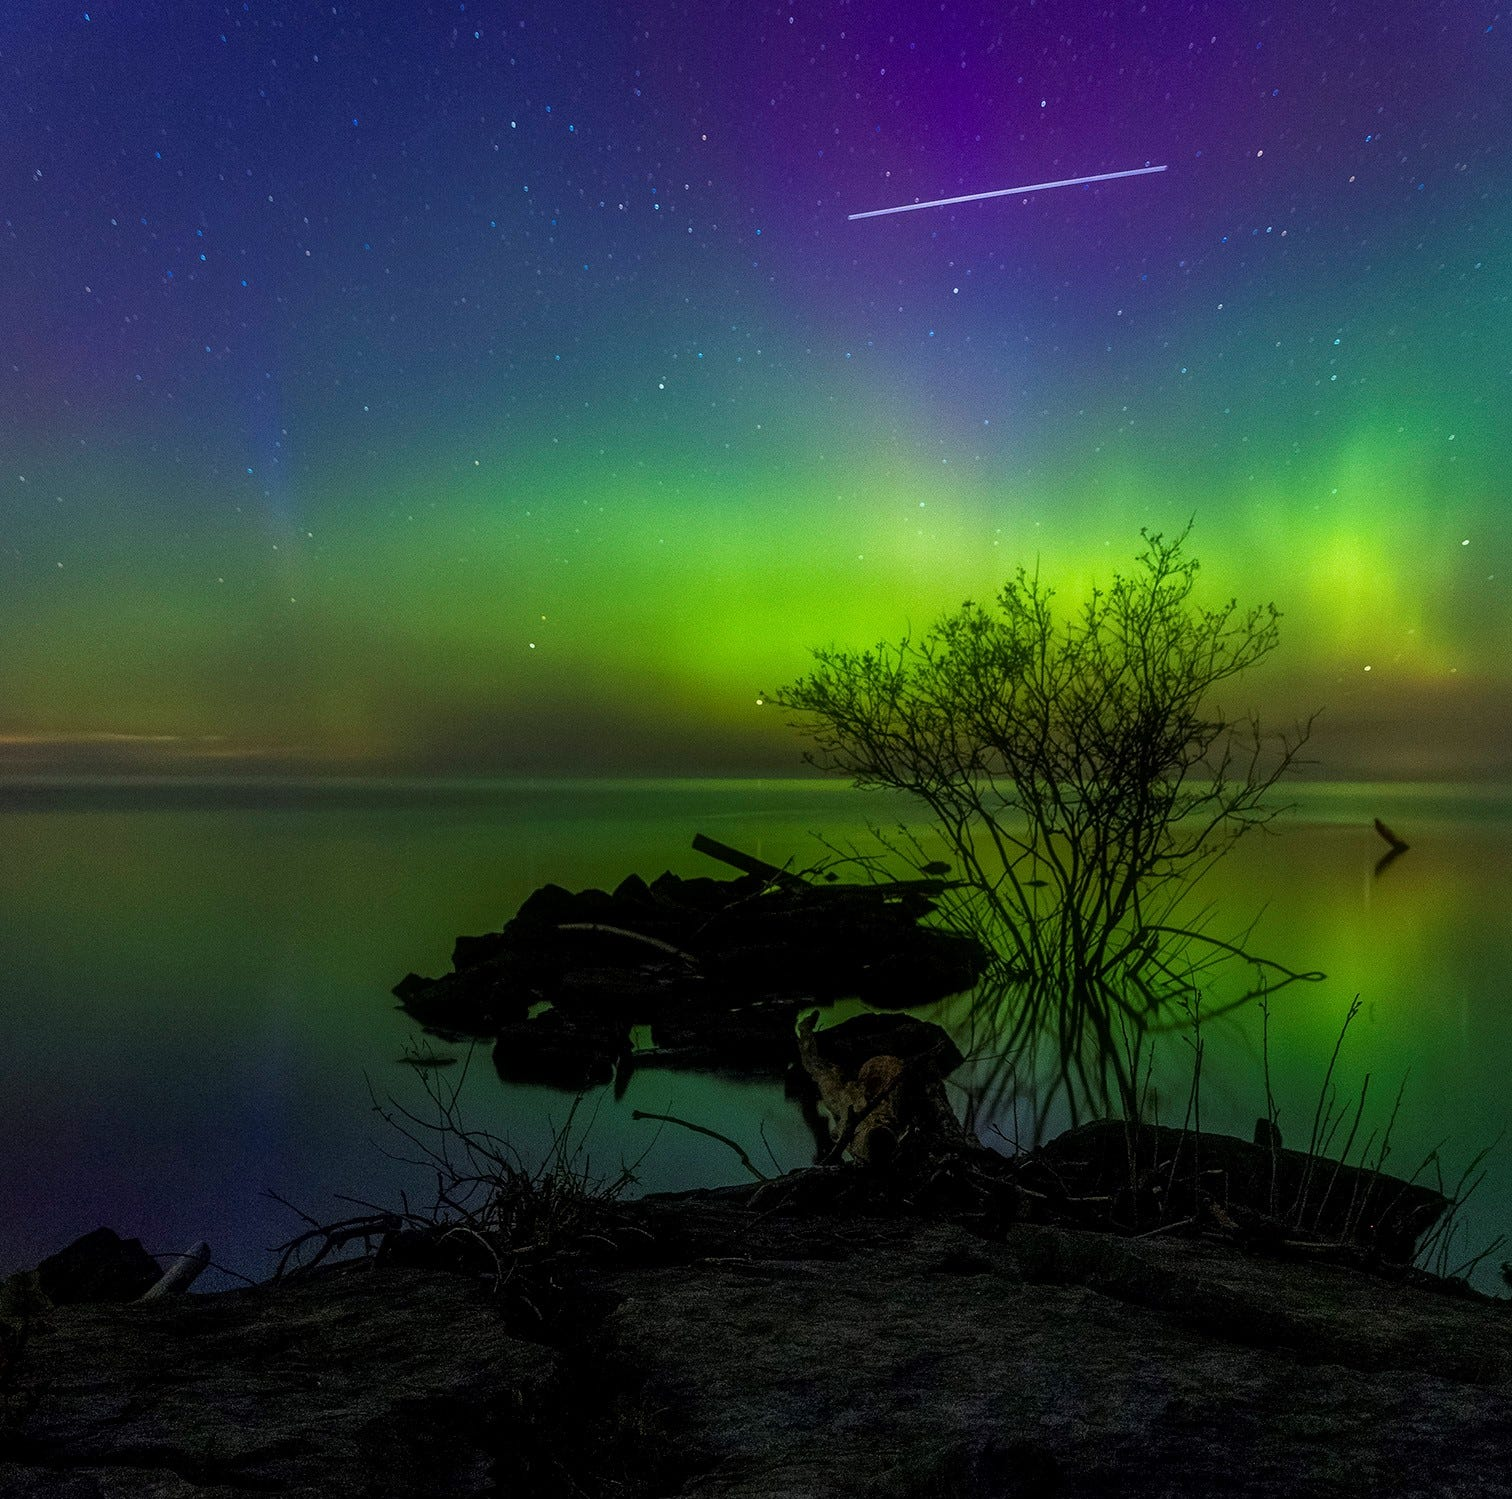 The northern lights in Rochester: What to expect, where to go, how to photograph